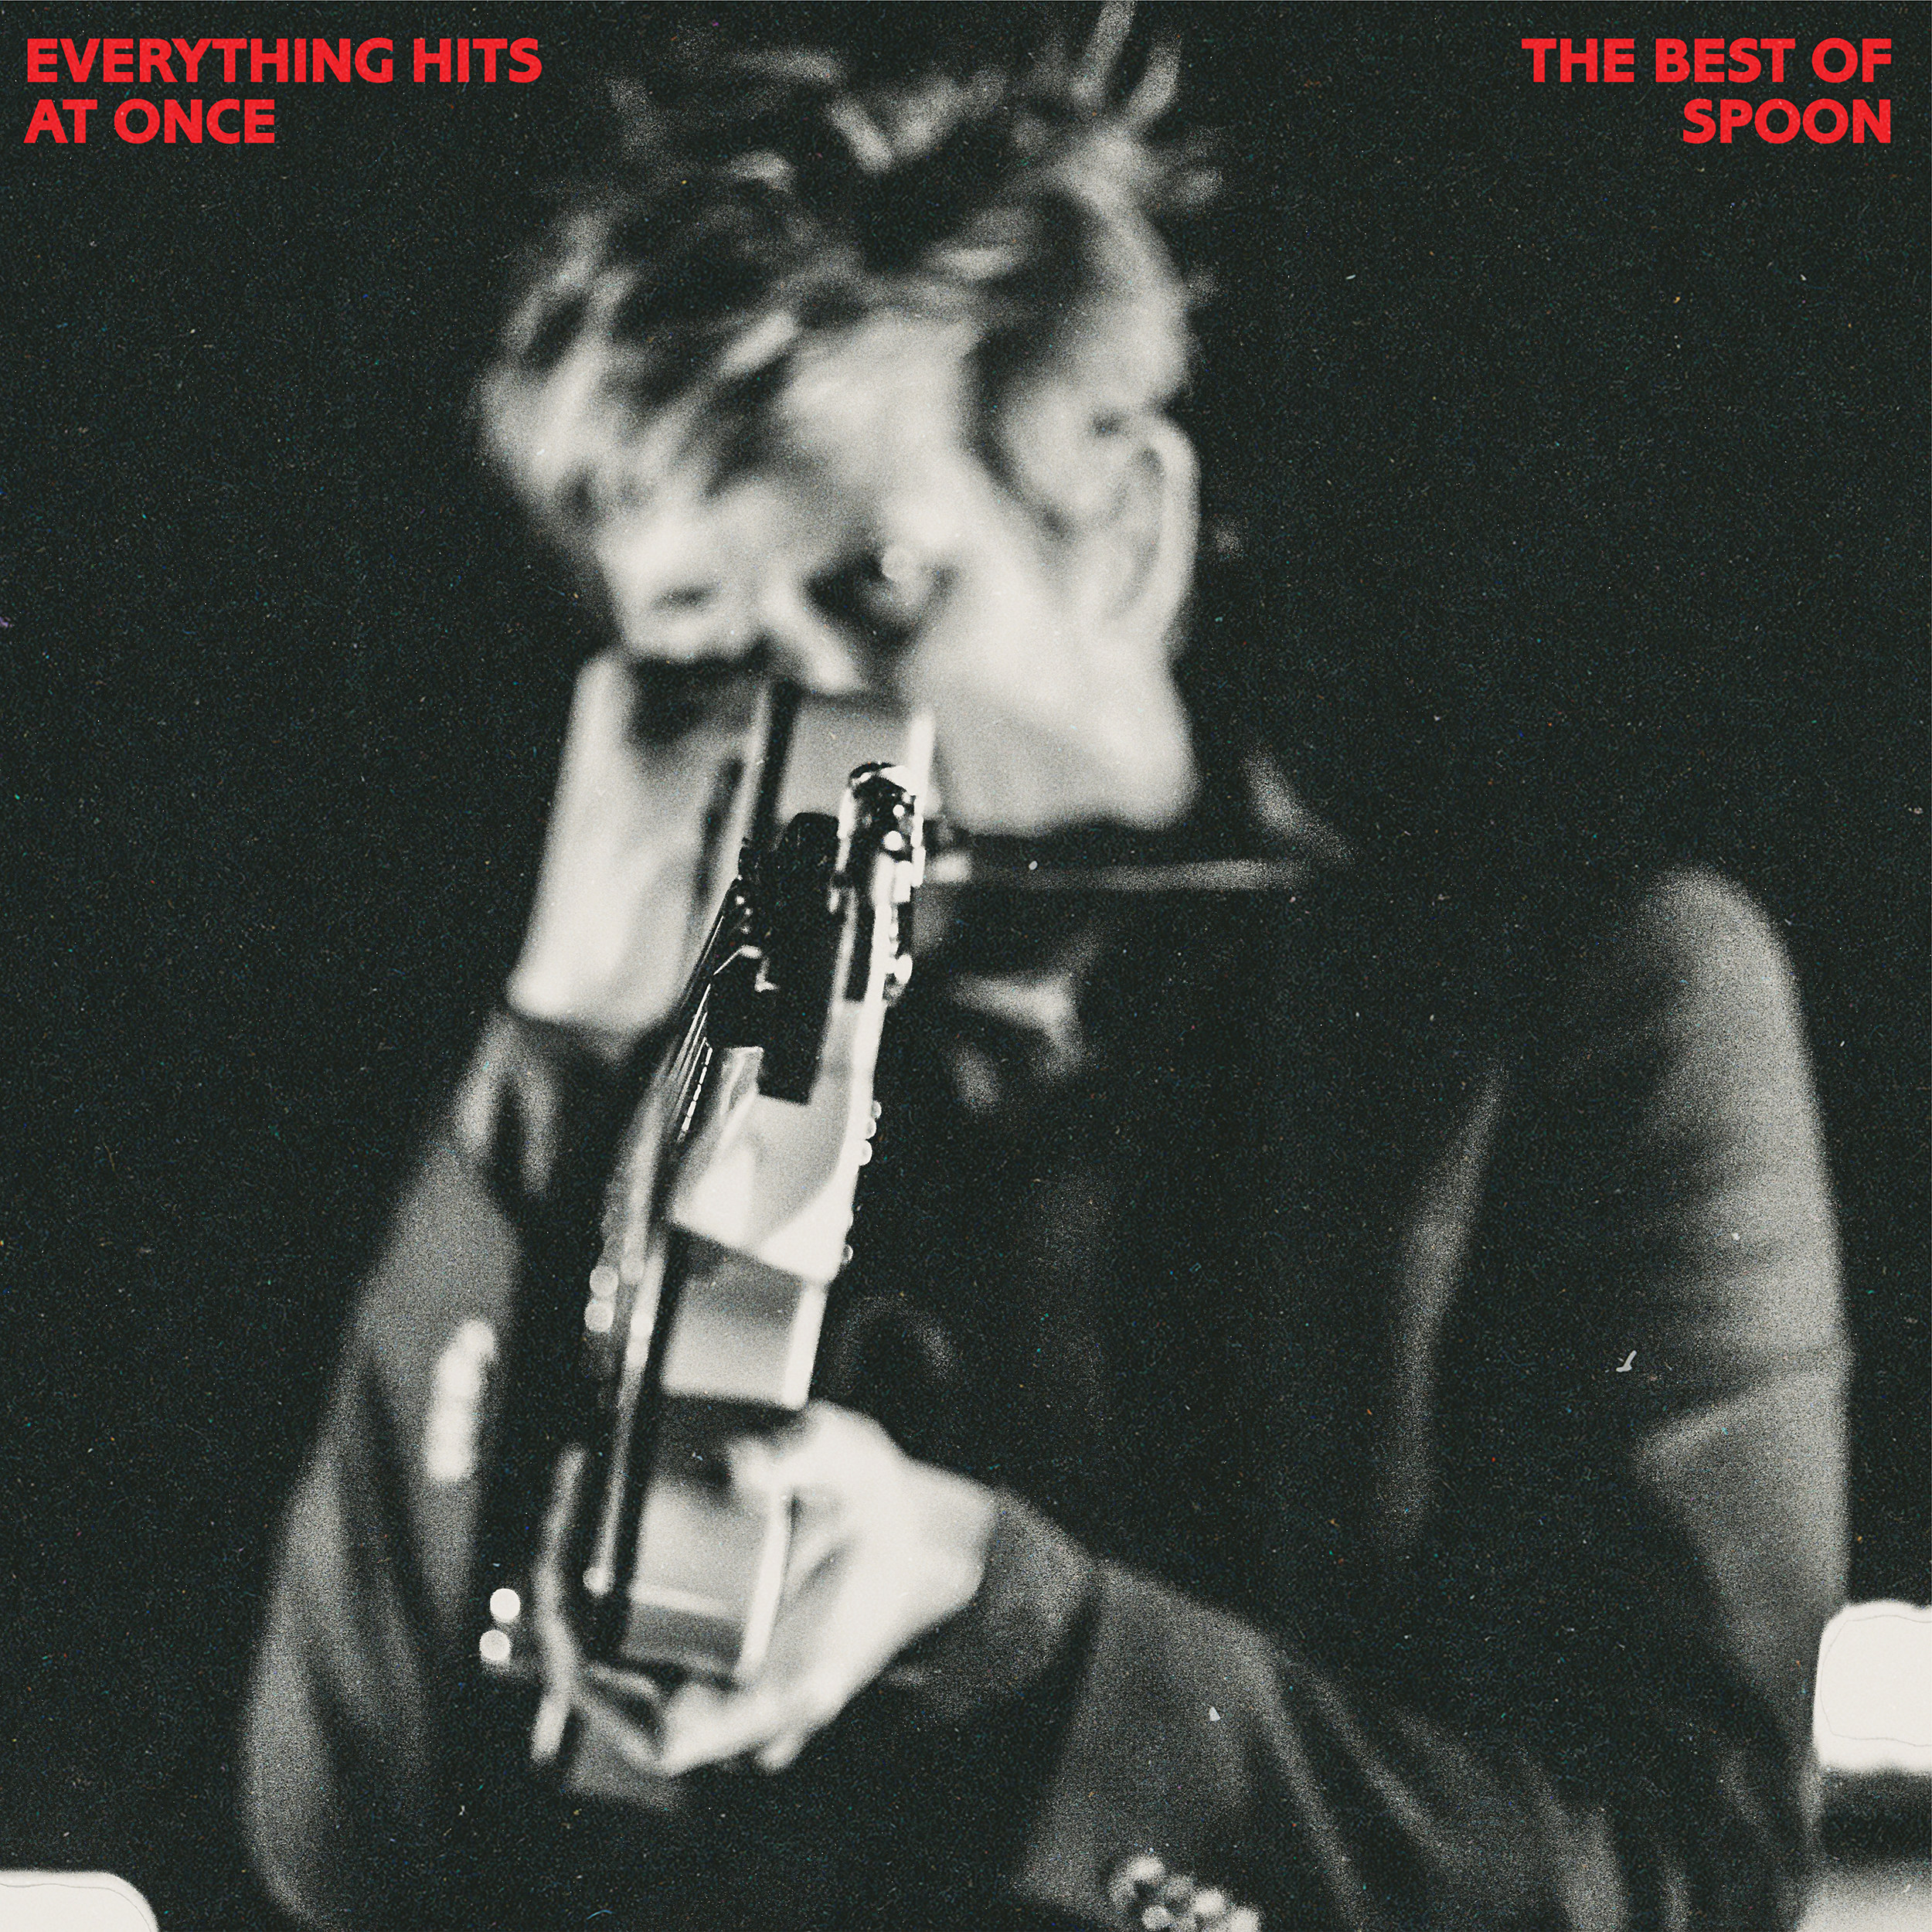 OLE-1471_Spoon_Everything_Hits_At_Once_The_Best_Of_Spoon_(Physical)